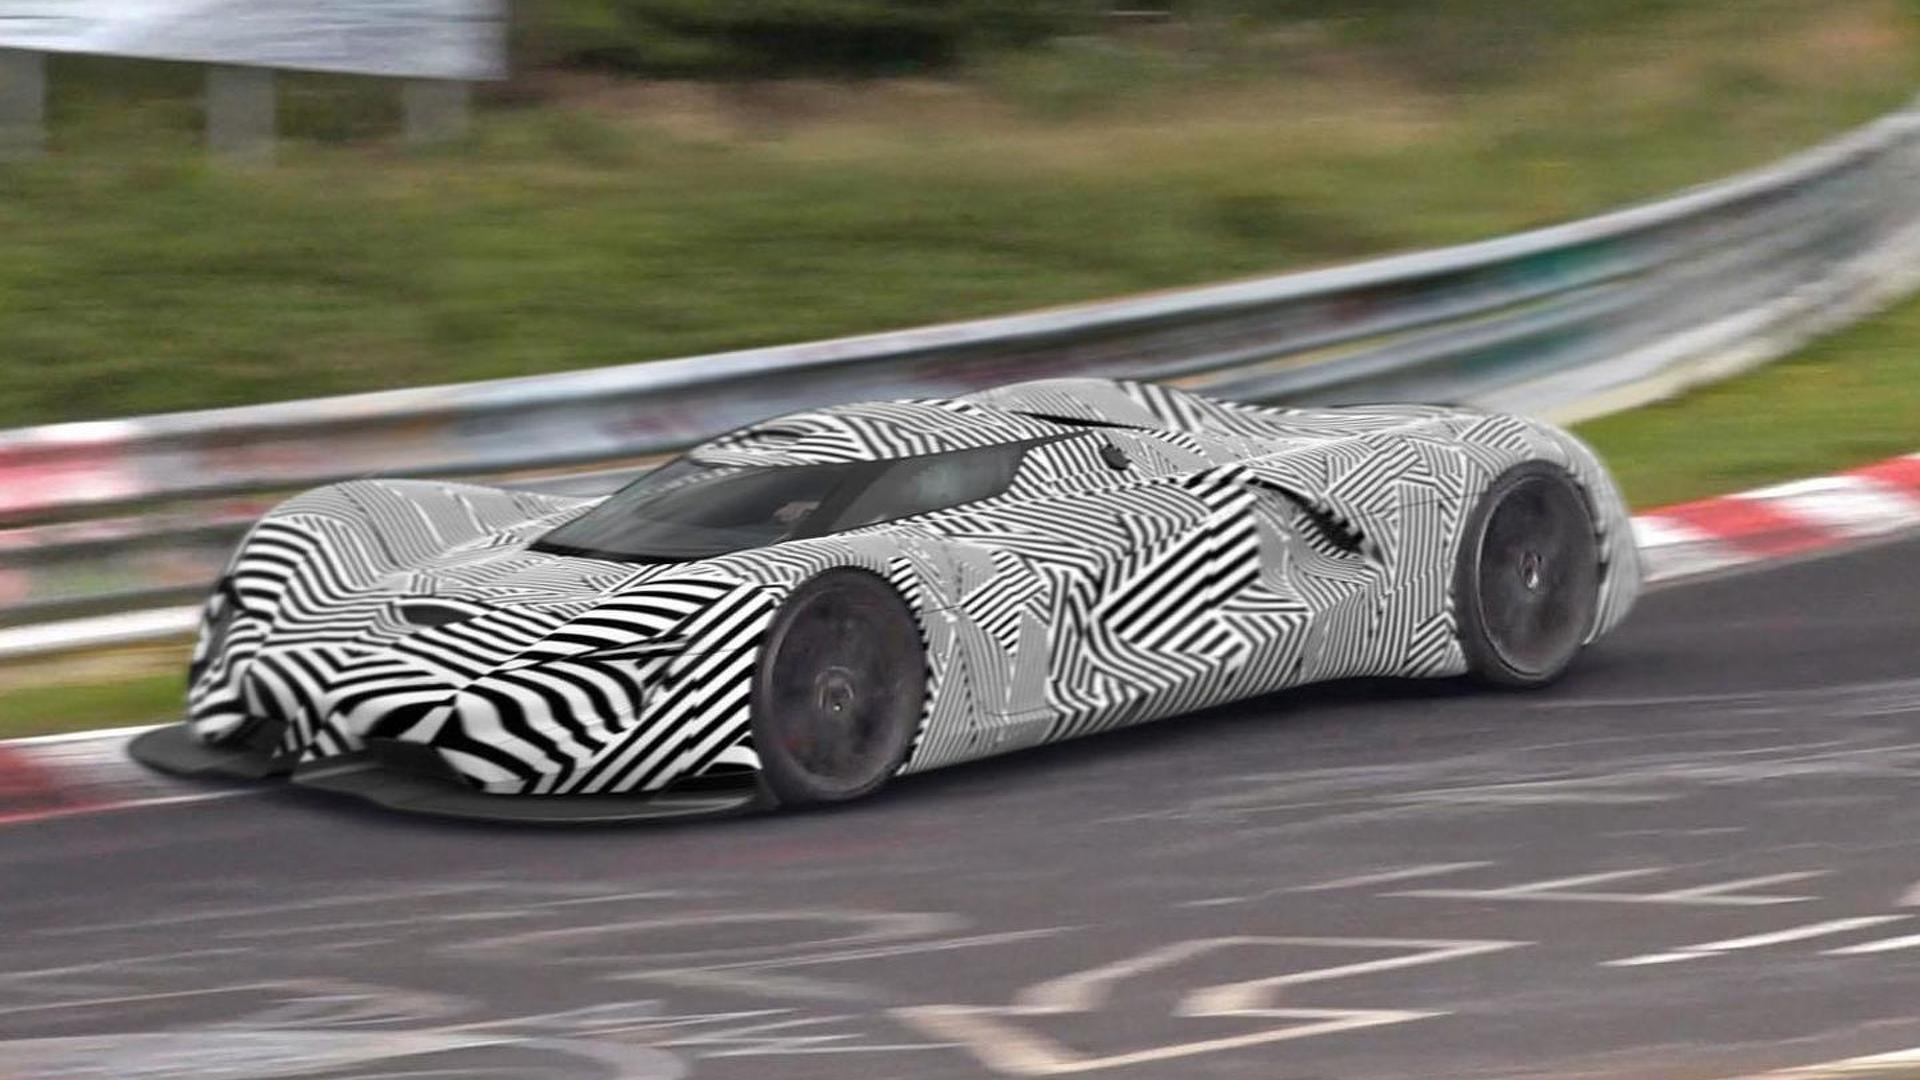 SRT Tomahawk Vision Gran Turismo teased for a second time